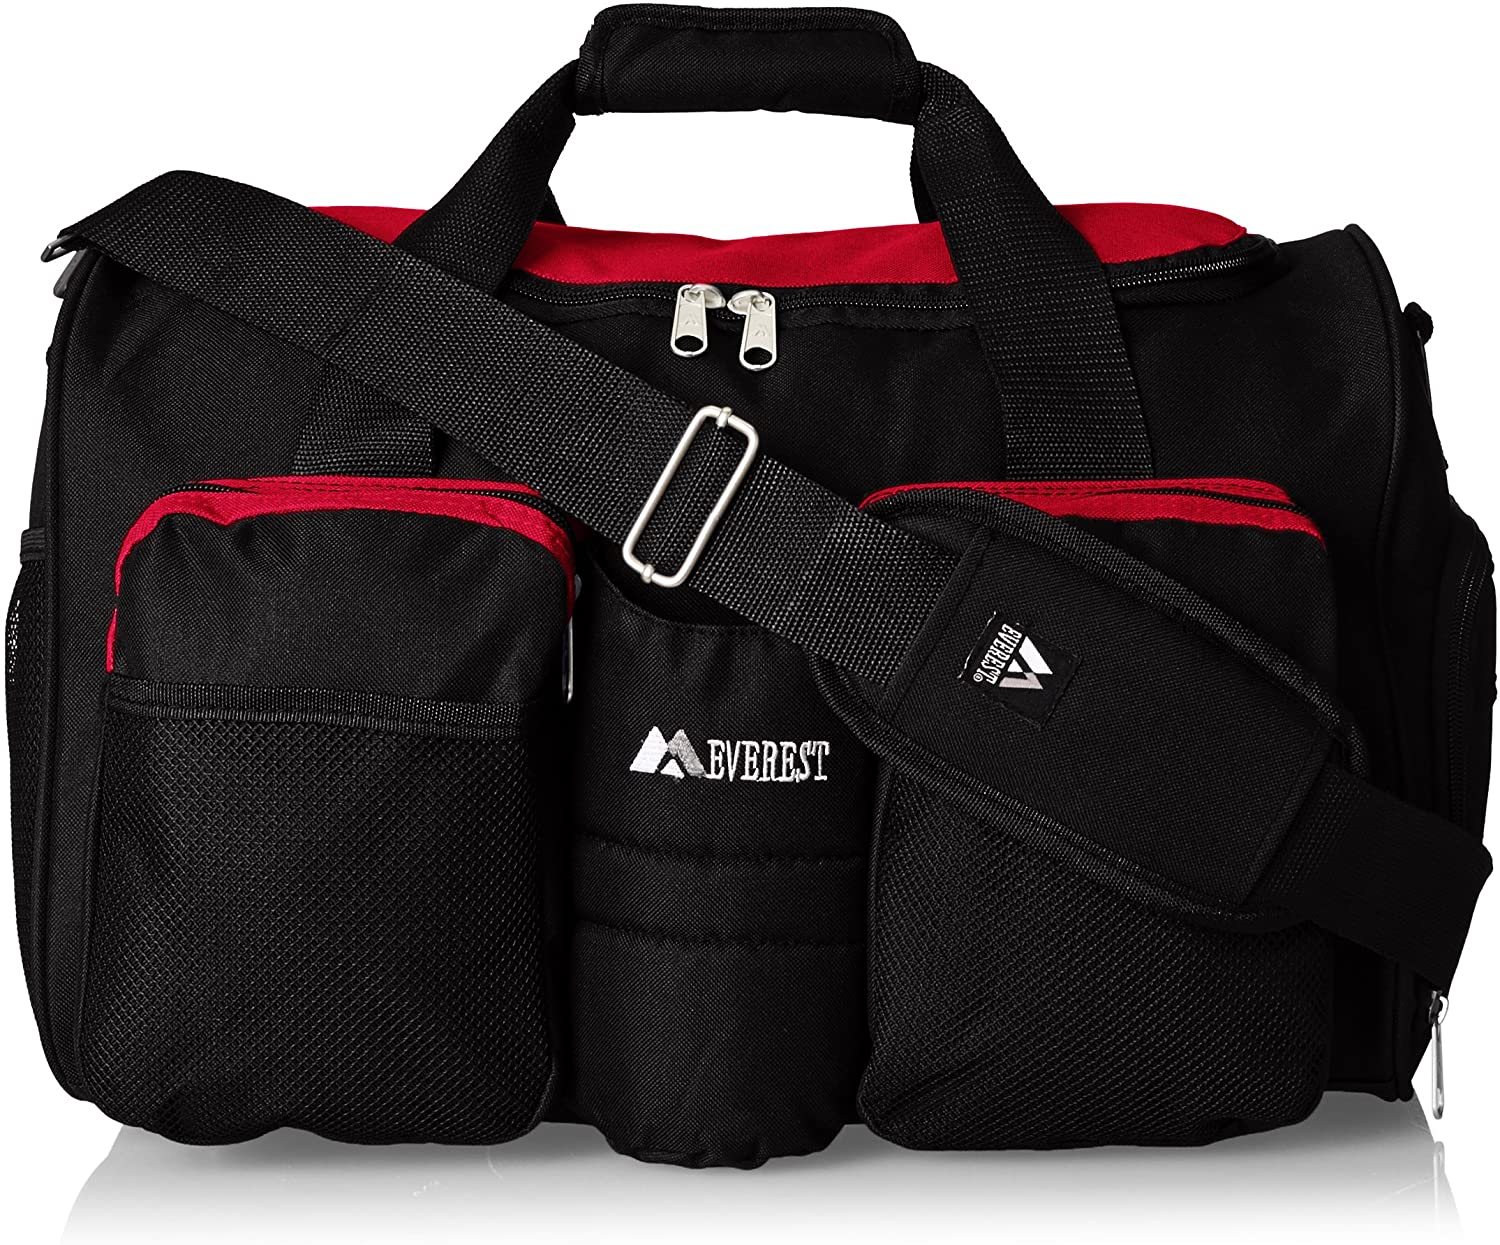 Everest Unisex Gym Bag